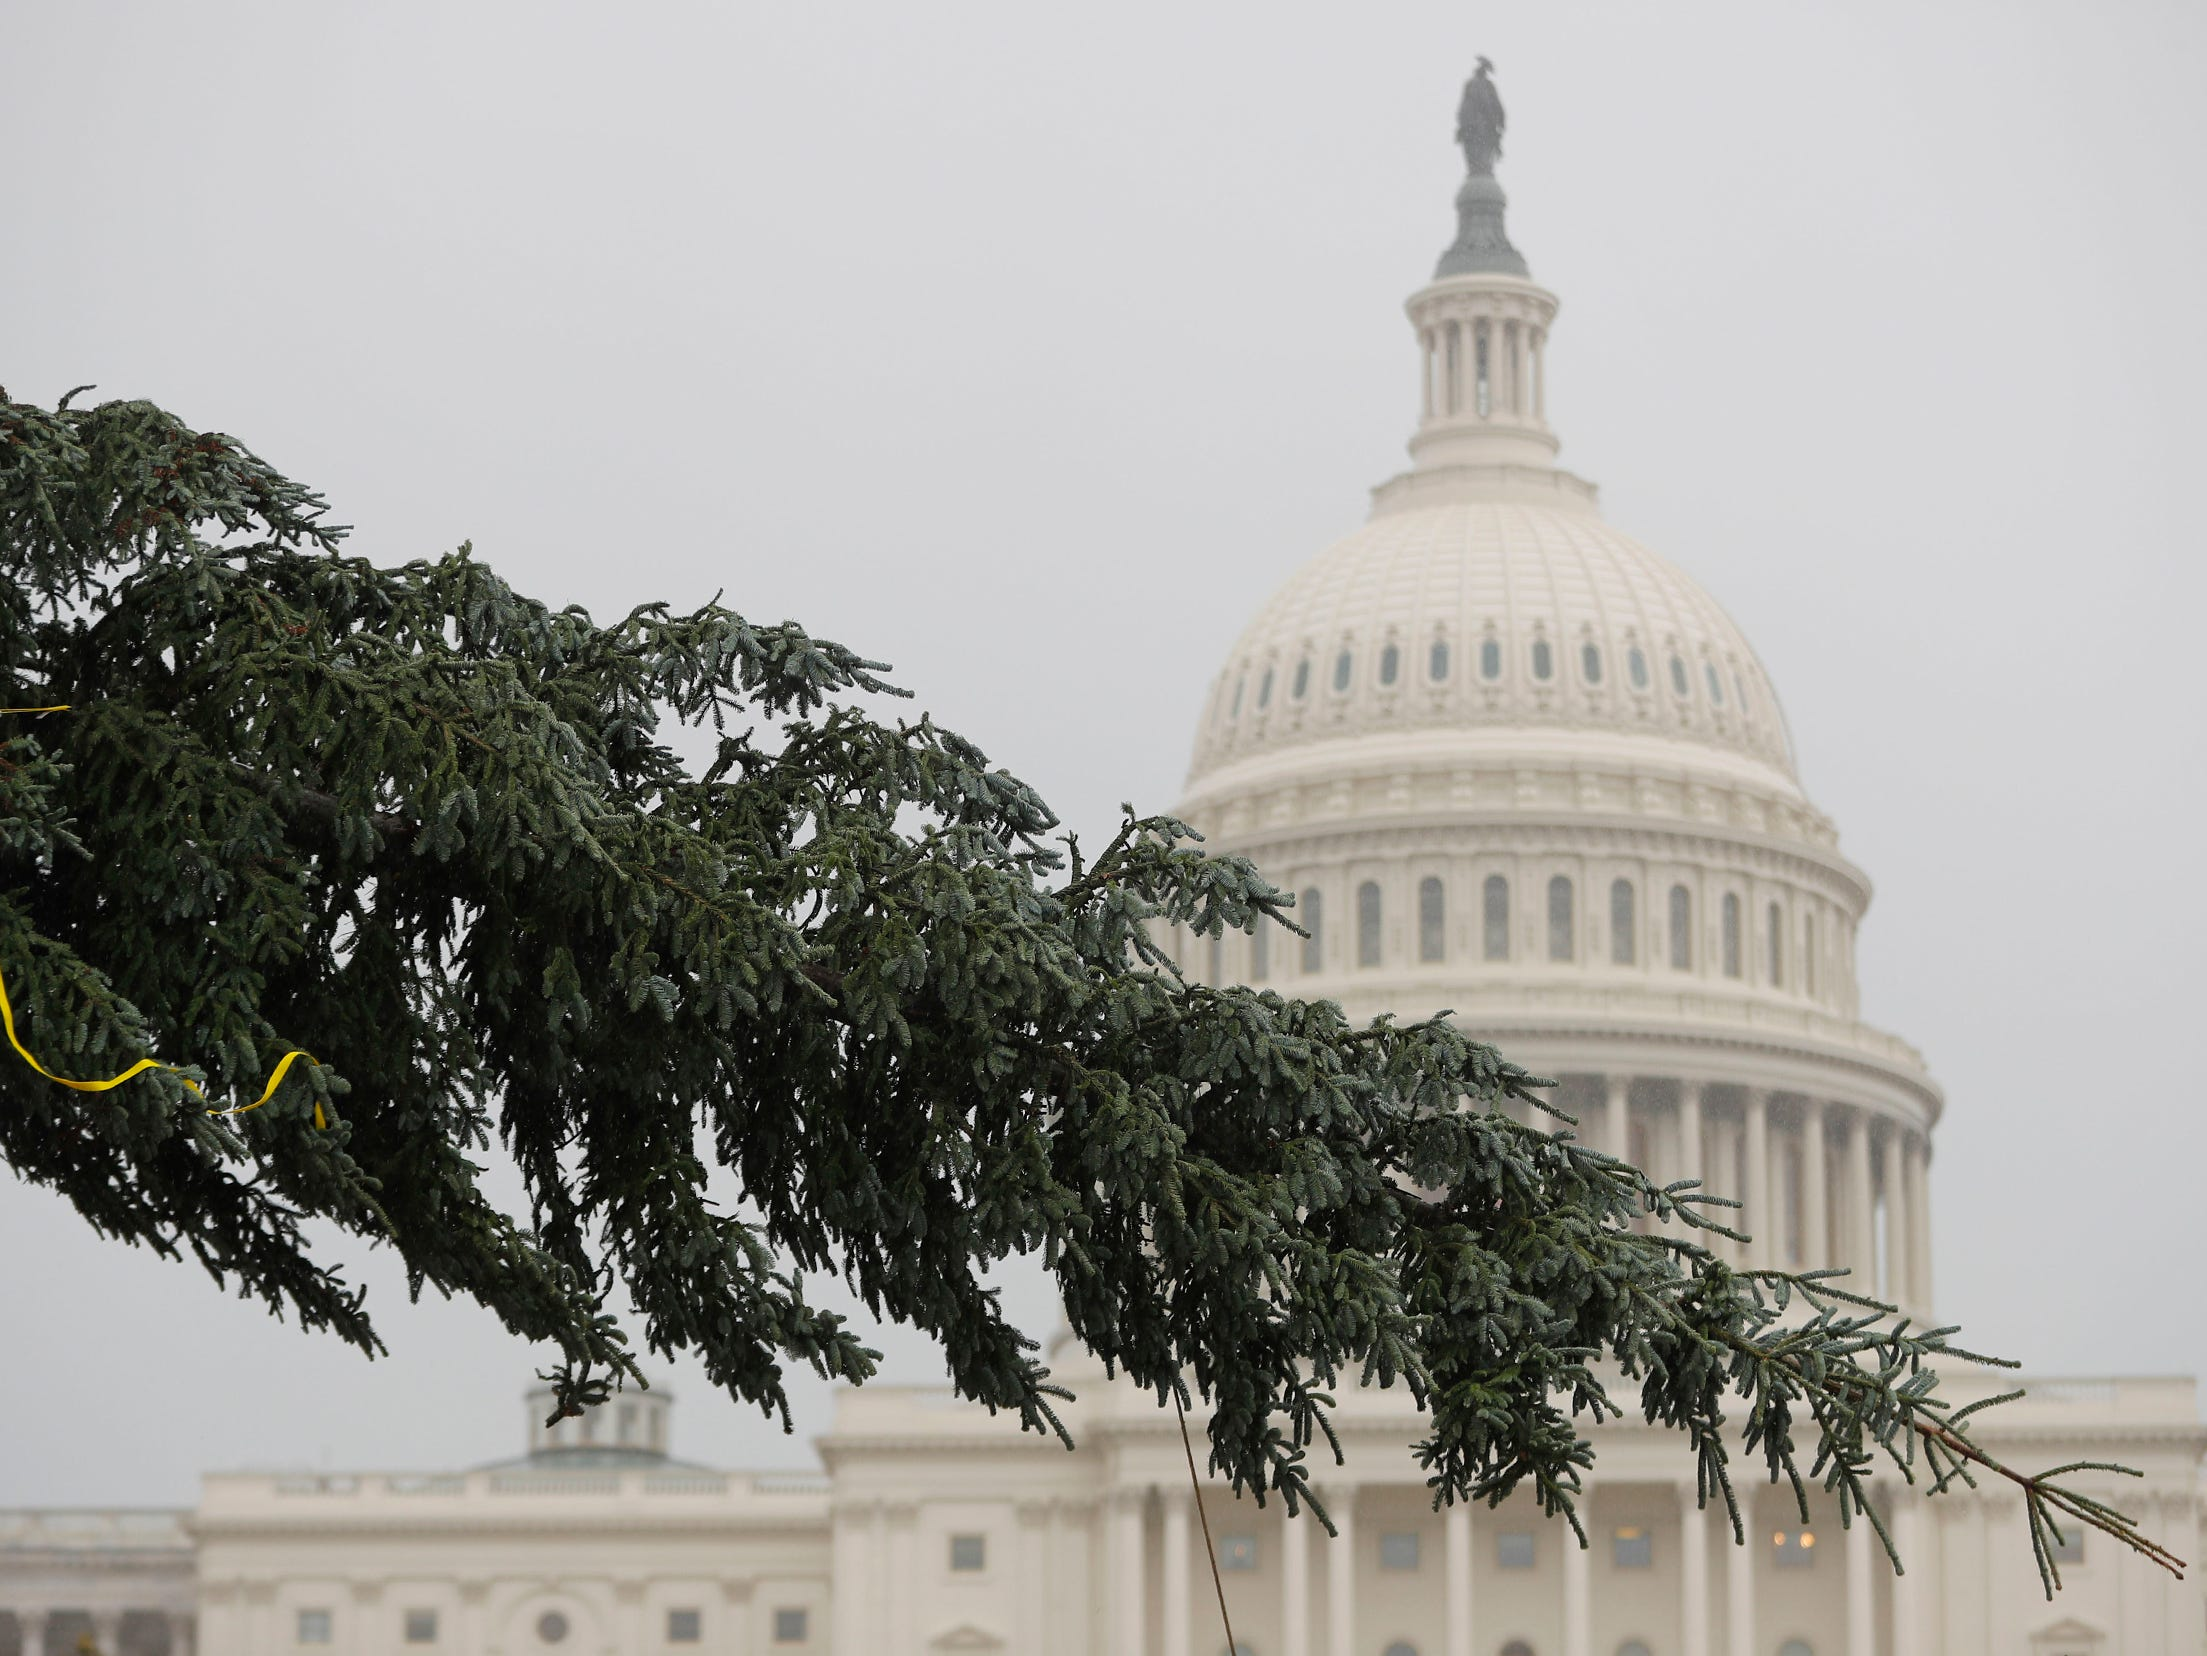 Workers move the 2018 U.S. Capitol Christmas Tree as it arrives to the West Lawn of the U.S. Capitol Building in Washington, Monday, Nov. 26, 2018, from Willamette National Forest in Oregon.